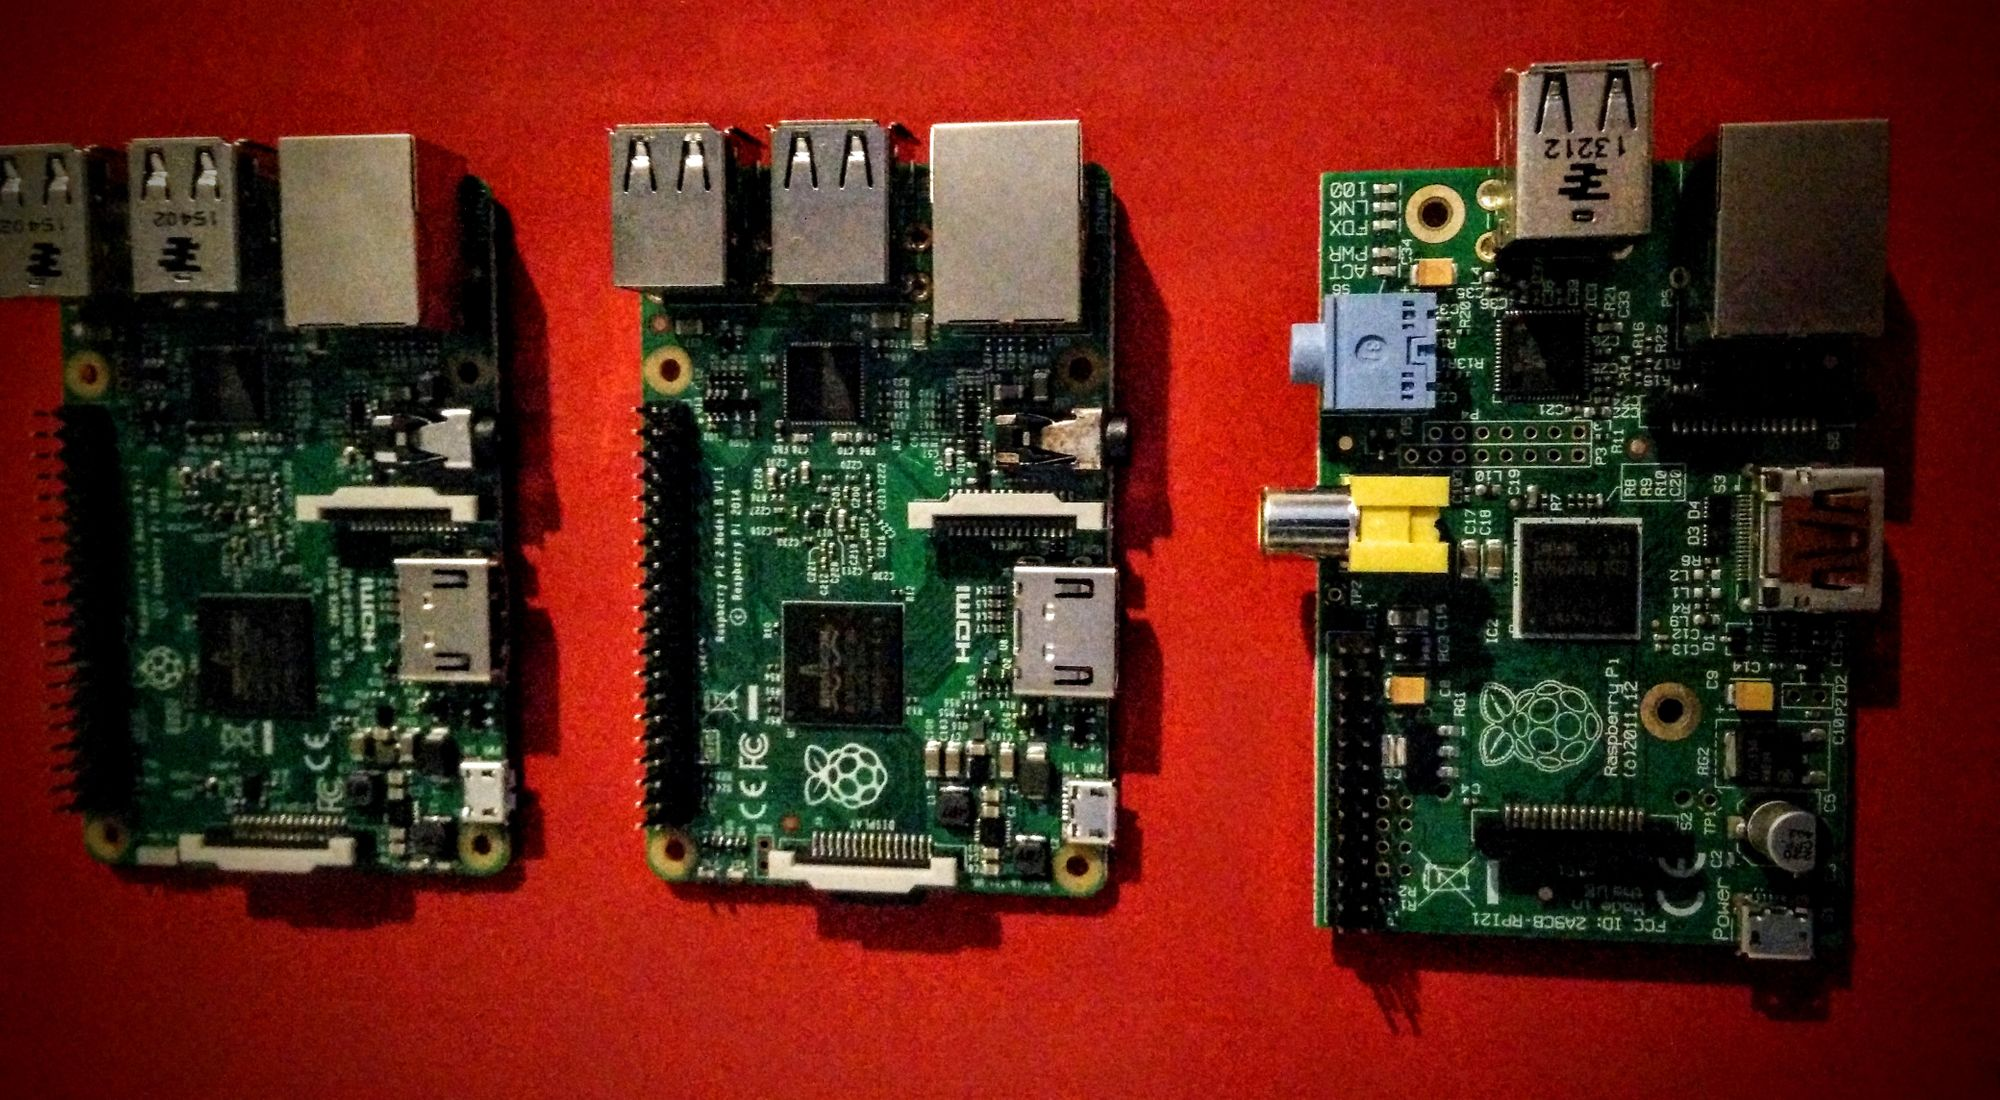 The Raspberry Pi 1, 2 and 3 compared